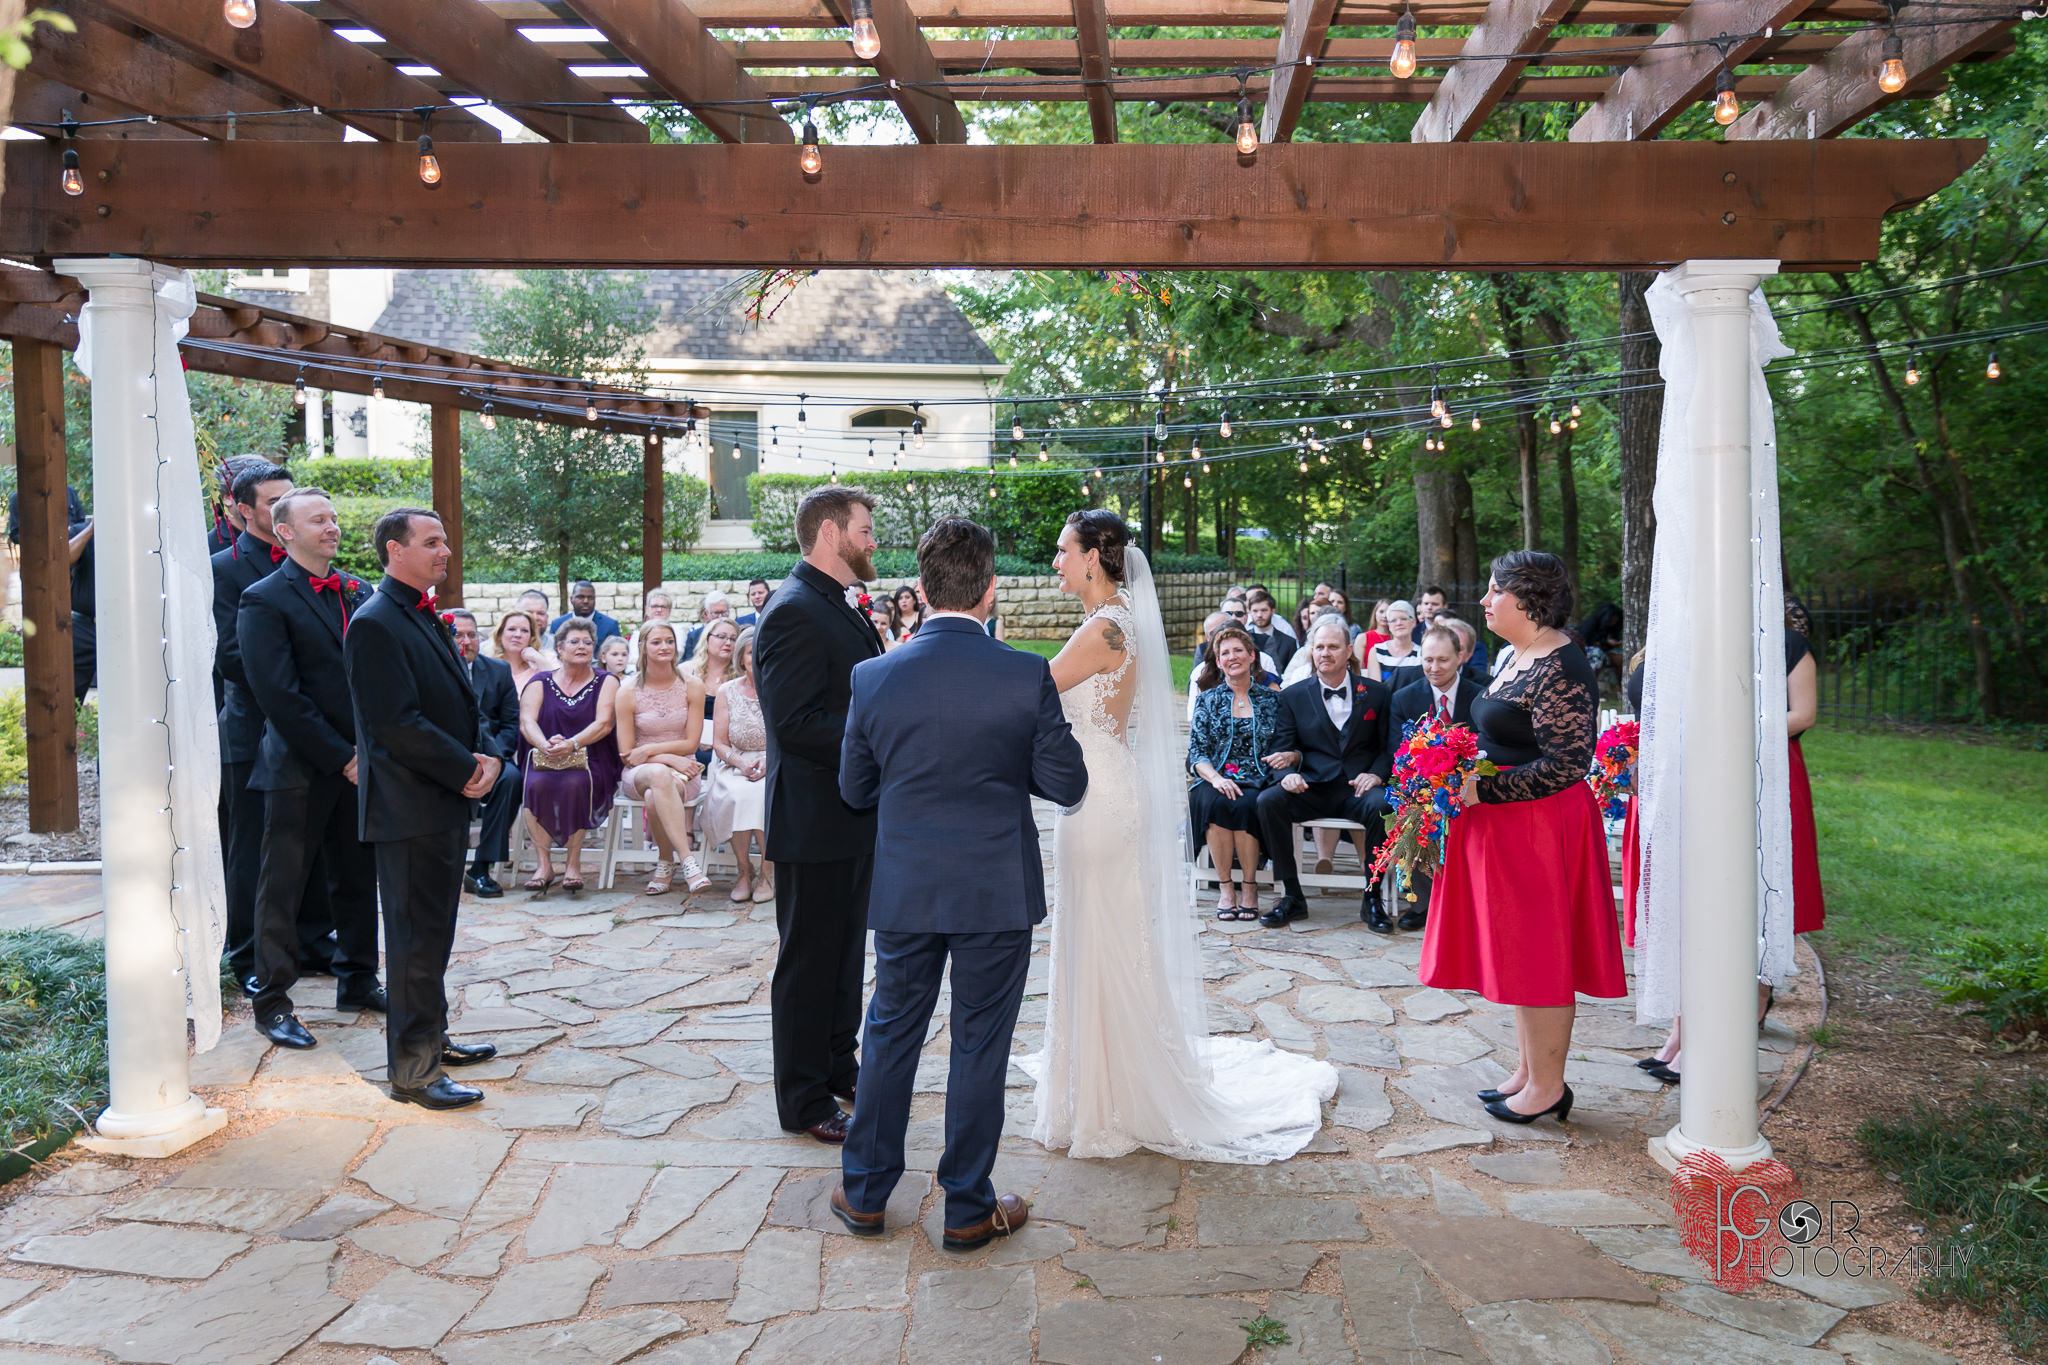 jenn-danny-wildwood inn wedding-20.jpg